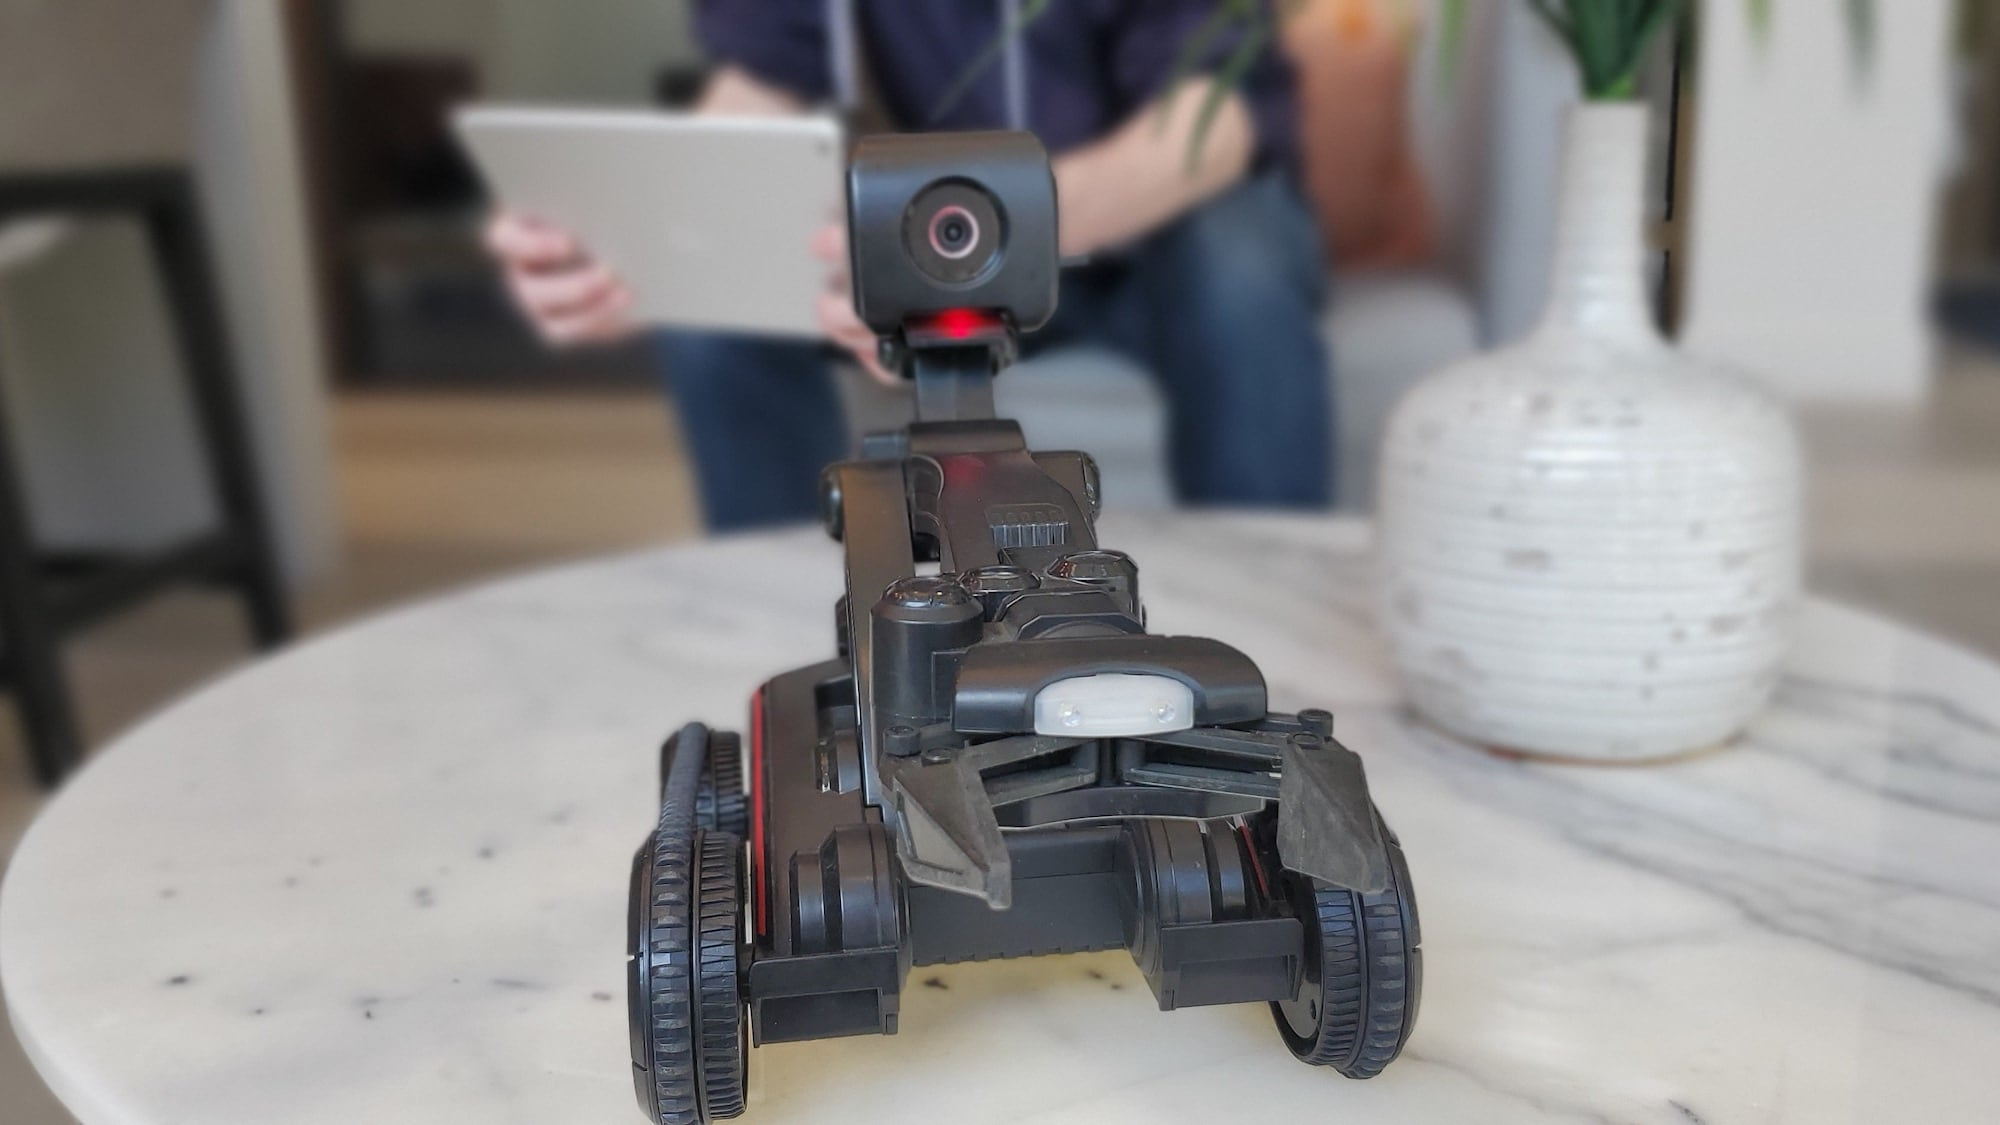 Nabot AI Trainable Robot can be programmed to do chores